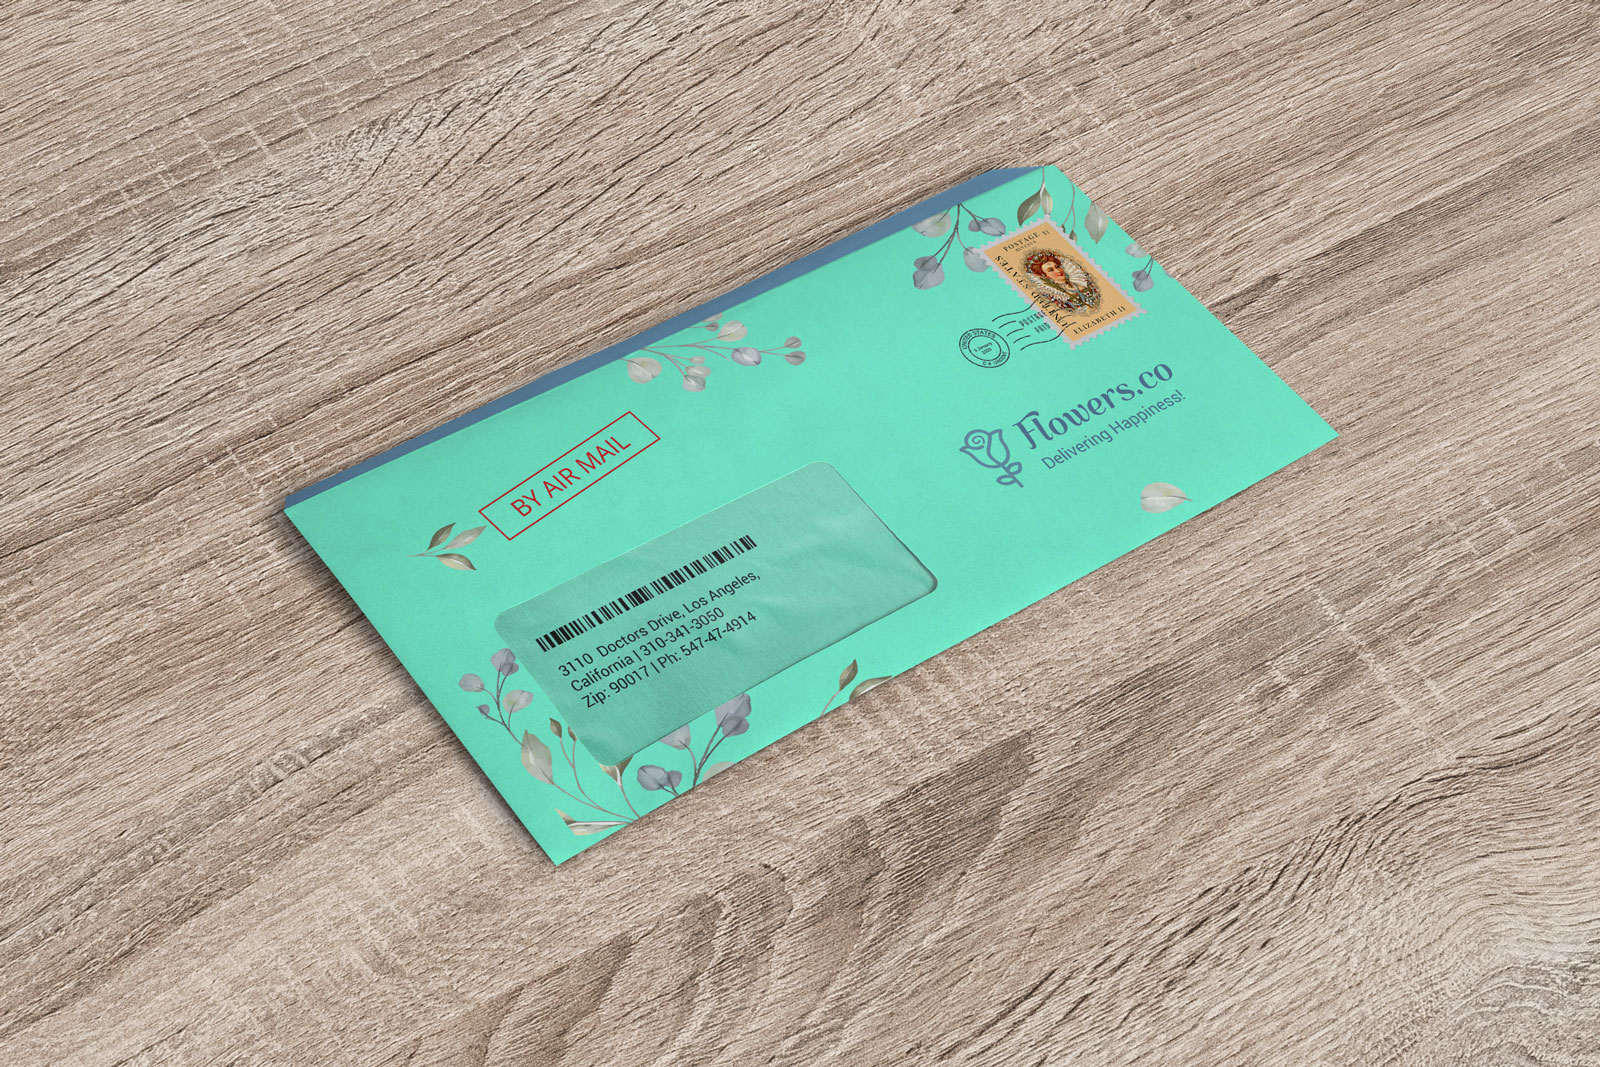 Free 9 x 4 Inches Windowed Envelope Mockup